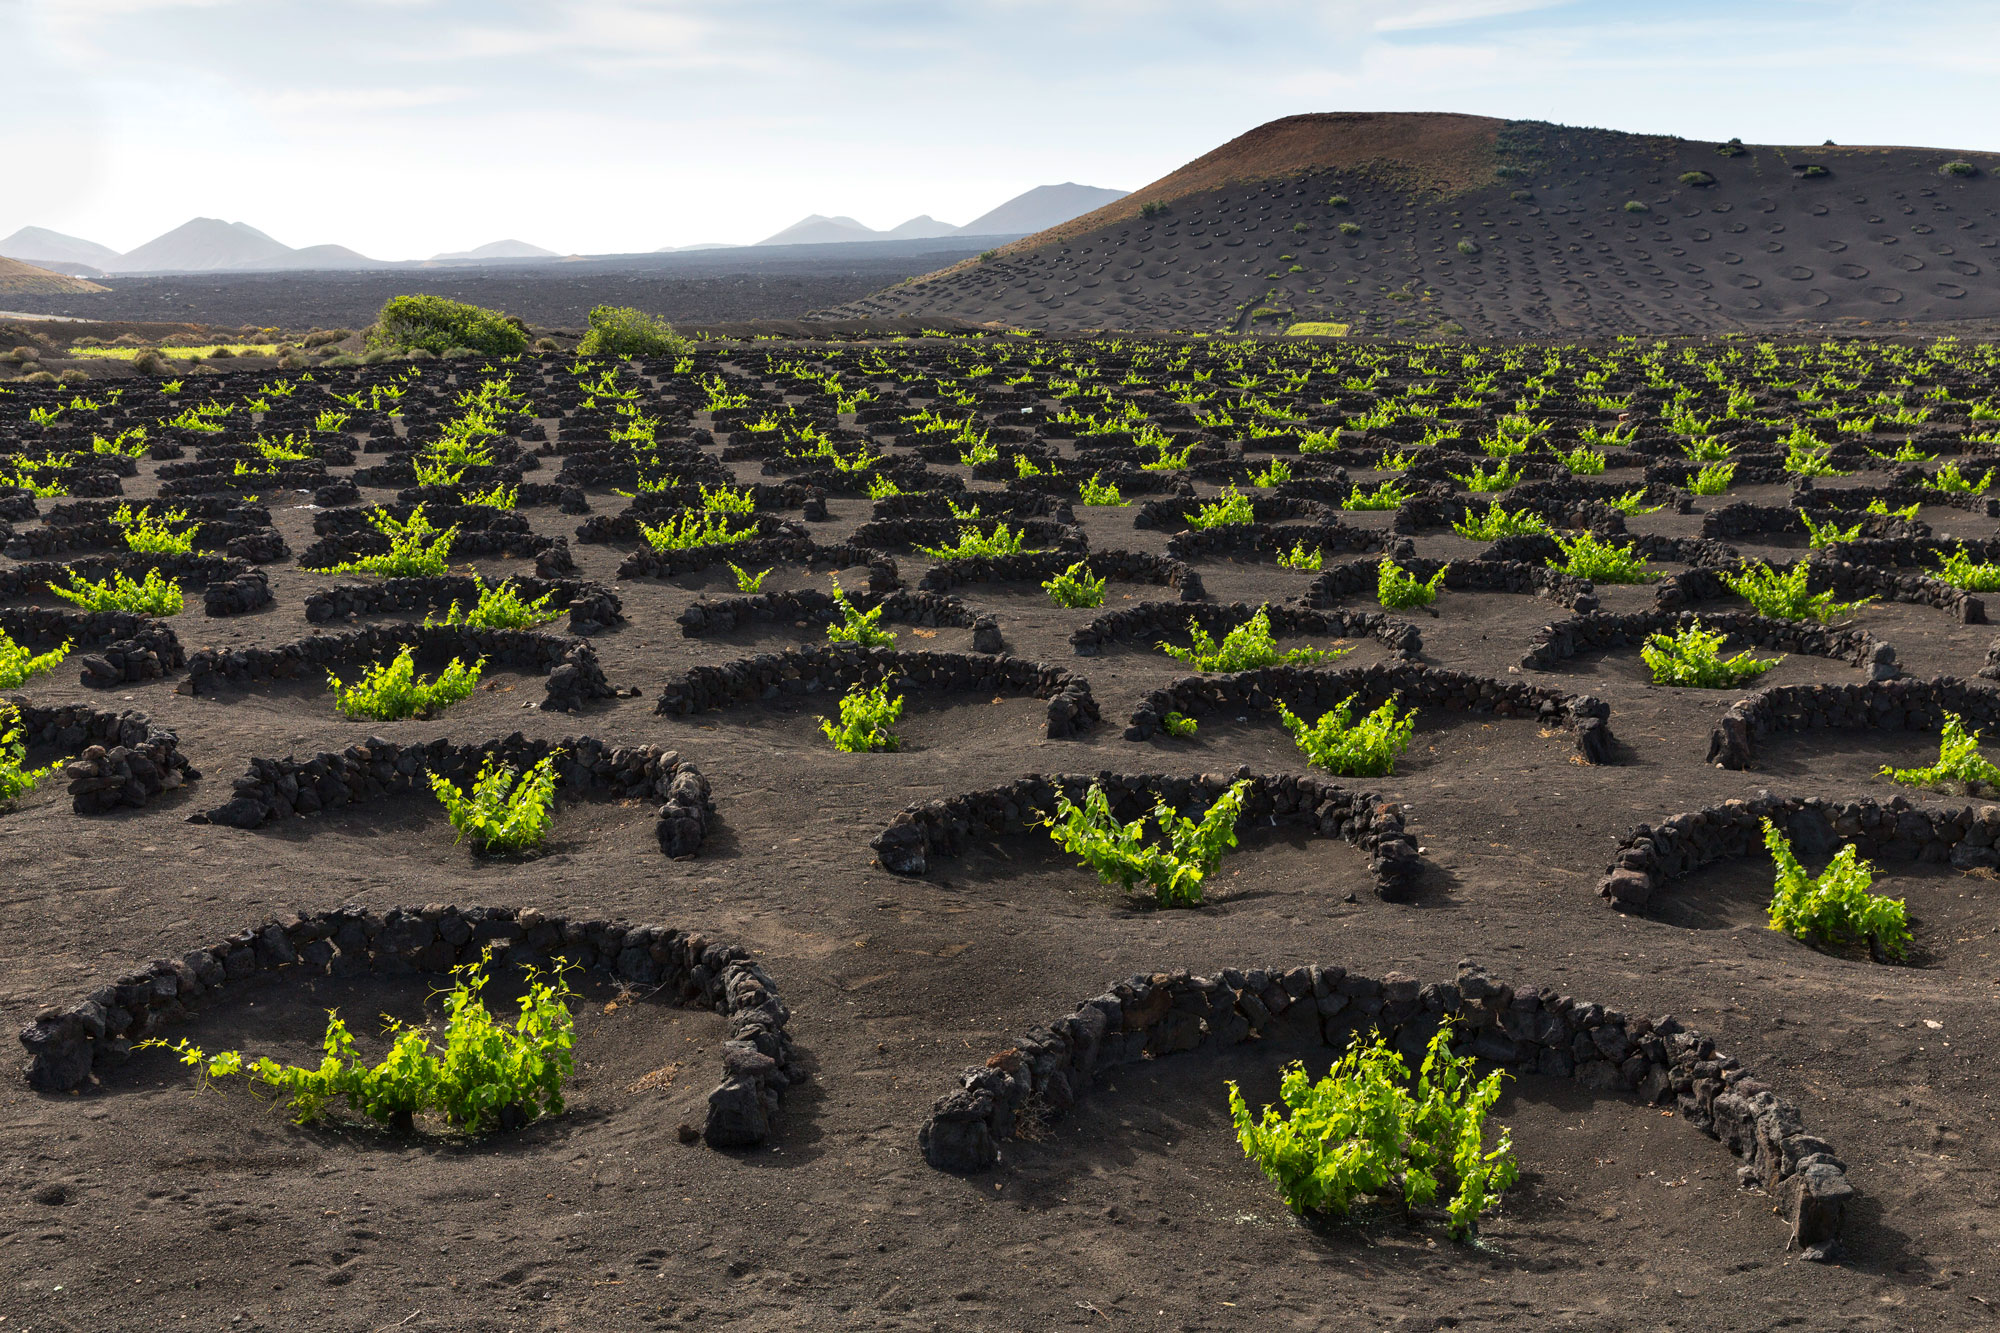 The unique vineyards of Lanzarote are planted in layers of nutrient-rich volcanic soil and protected from fierce winds blowing off the Atlantic by low rock walls .